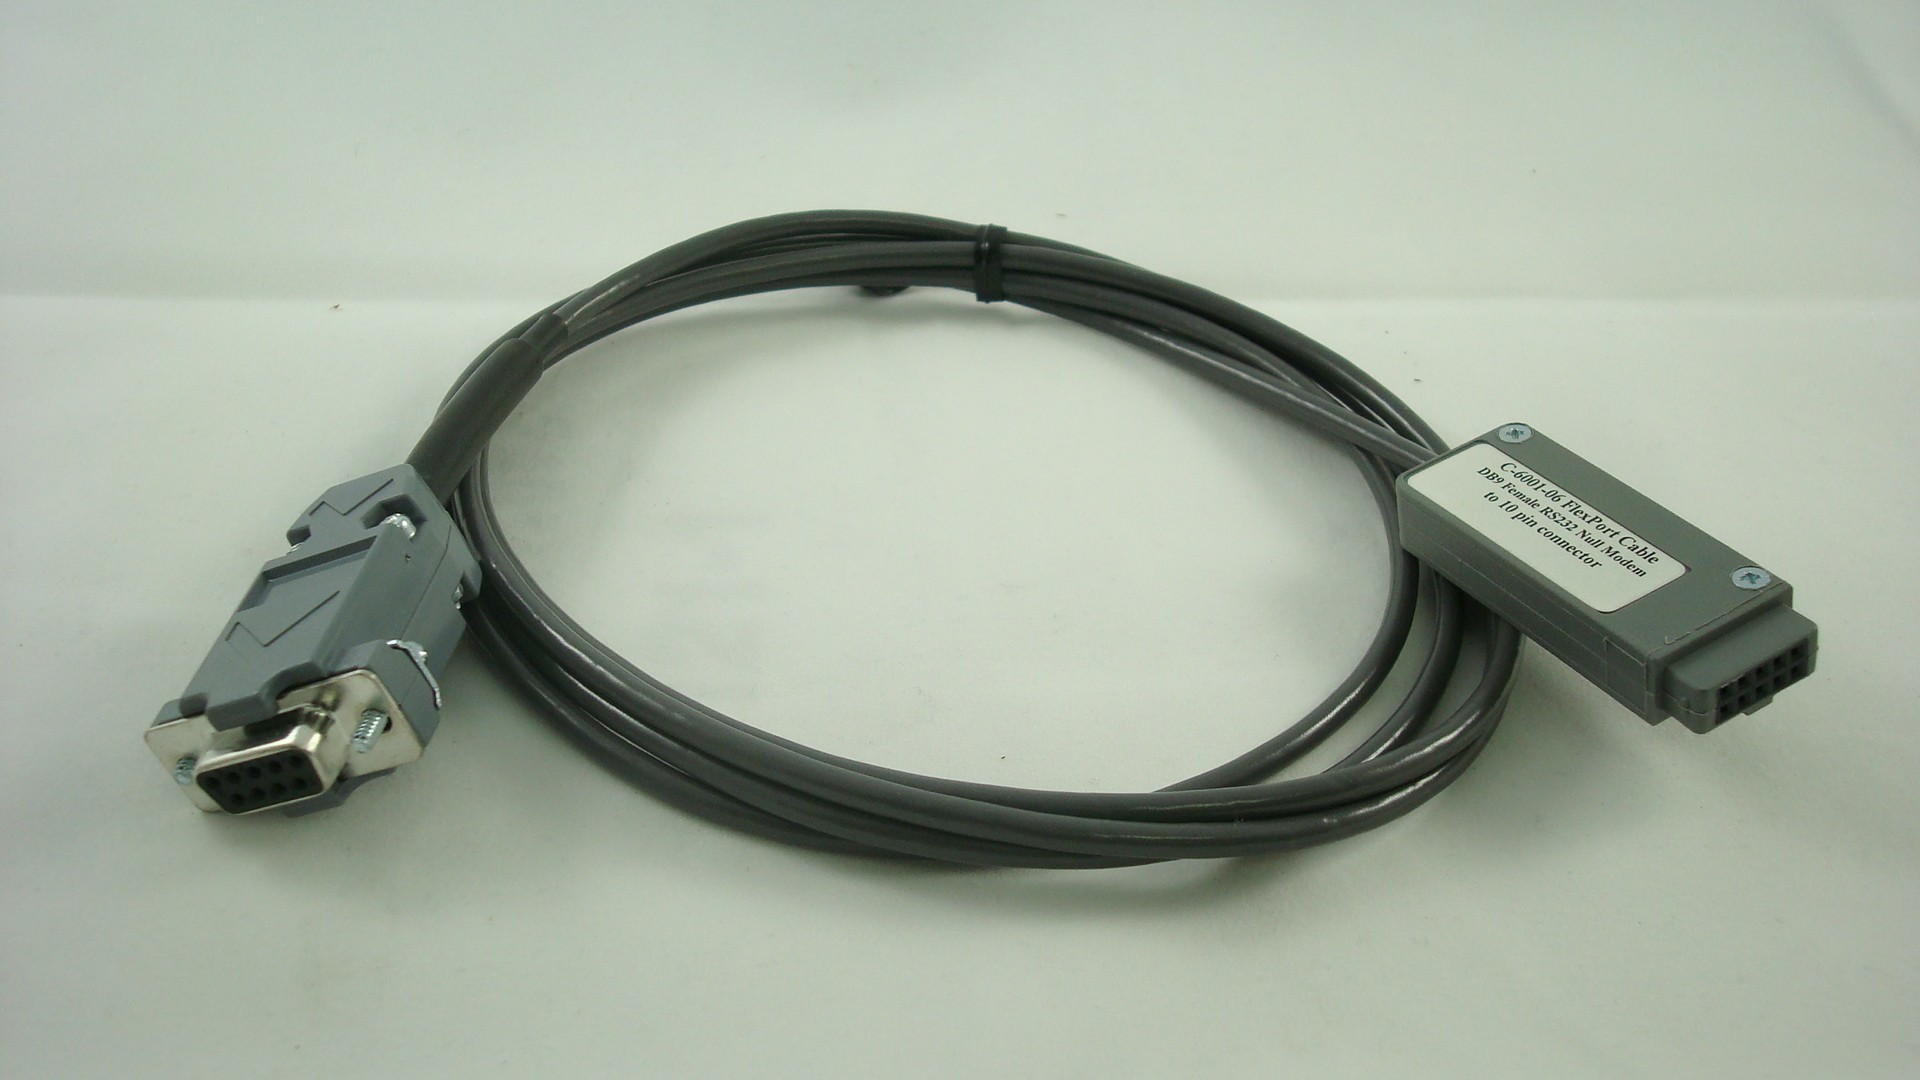 C-6001-06 RS232 DB9 Female Null Modem to 10 pin connector (6 ft)